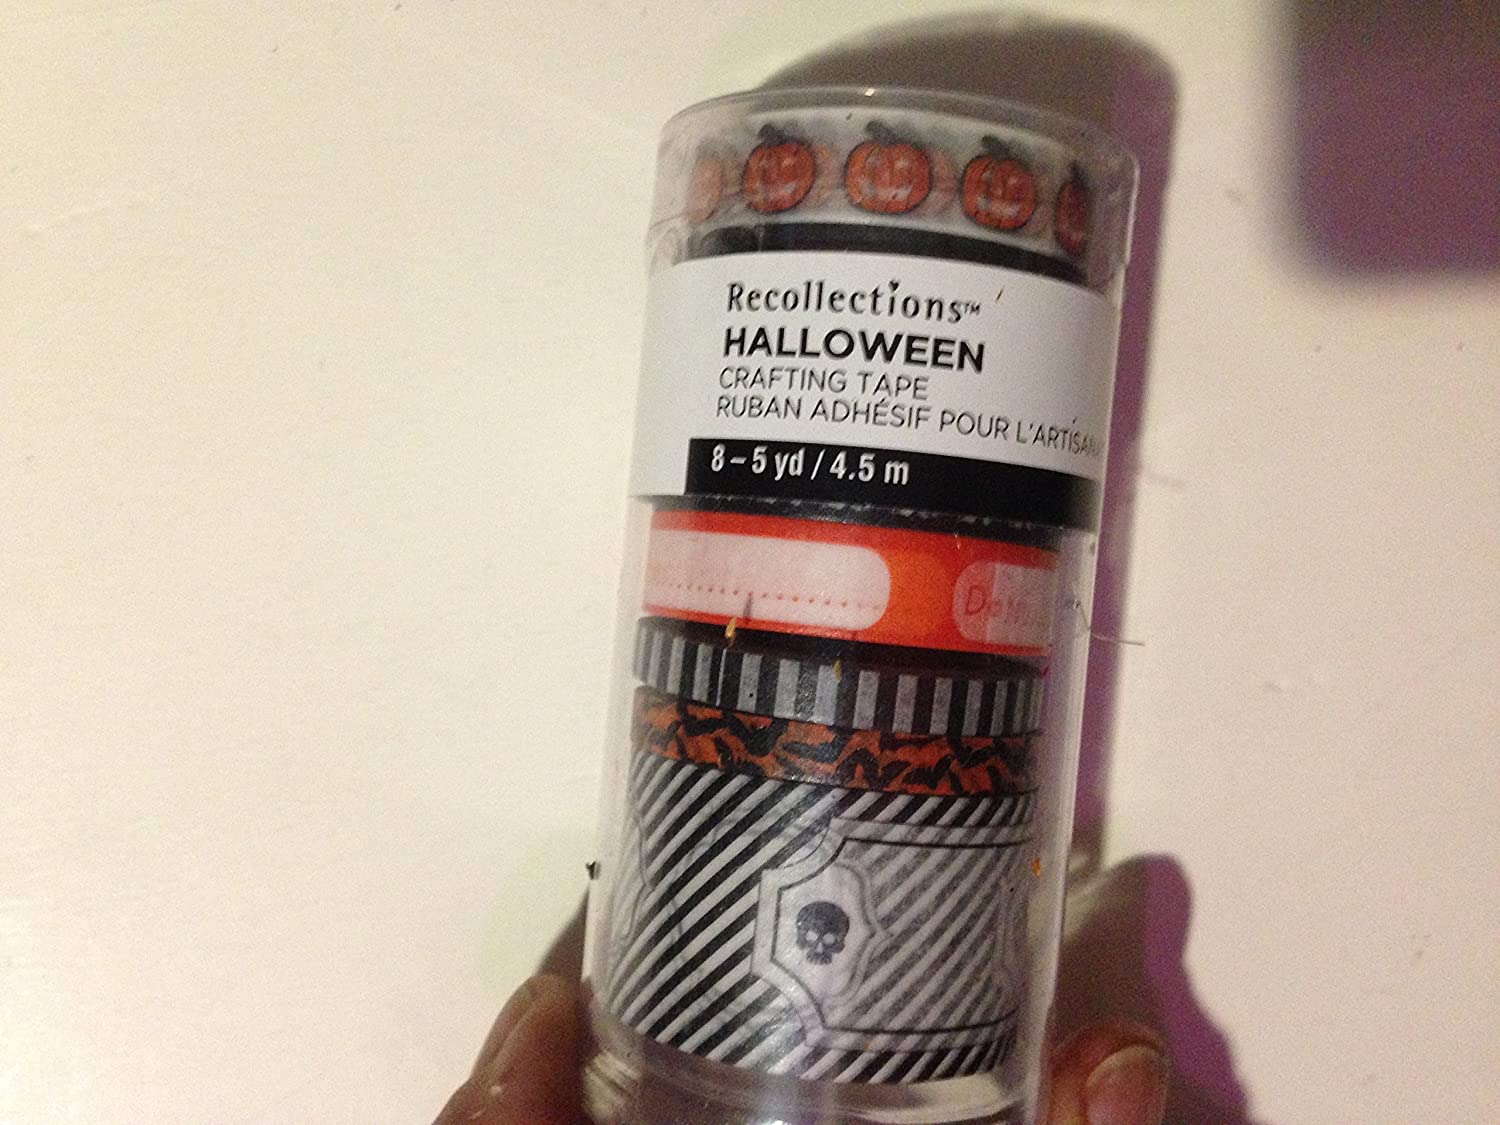 Halloween Assorted Sizes and Designs Crafting Tape Total 8 5 Yard Items in Tube. 2 Tubes per Order MSRP $9.99 Each=$19.98 Value #519689